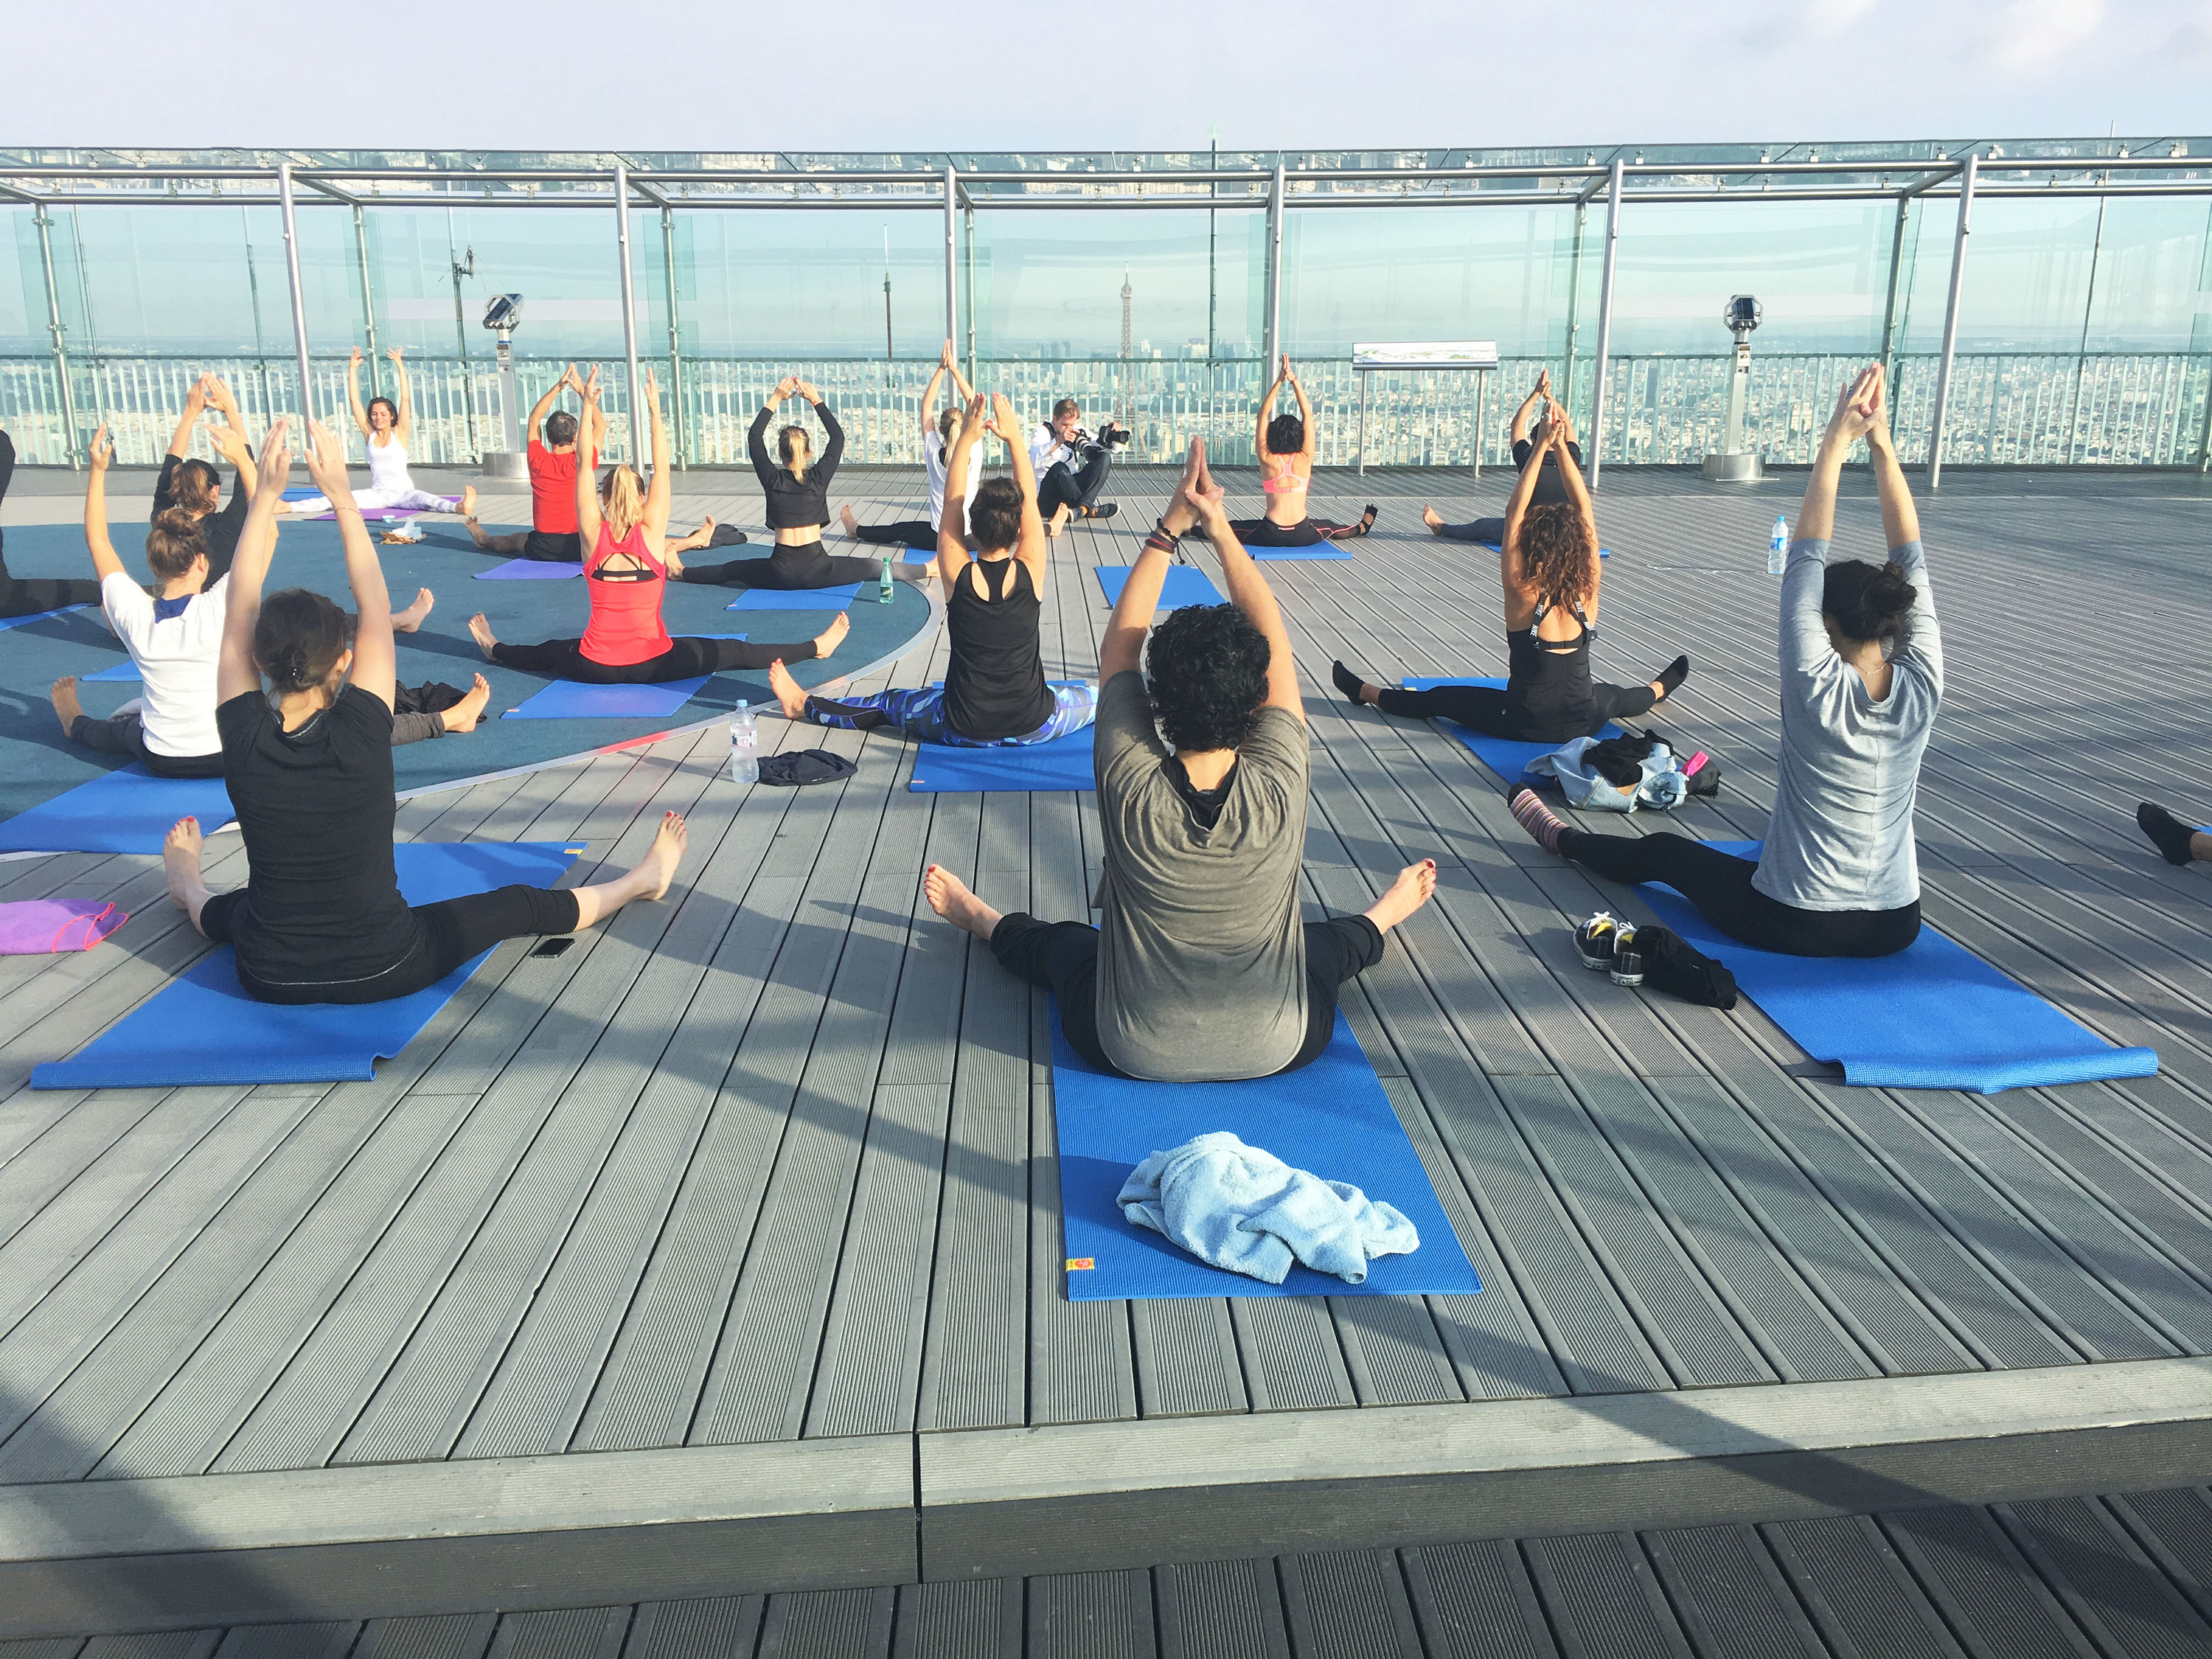 Yoga classes on the rooftop of Montparnasse Tower